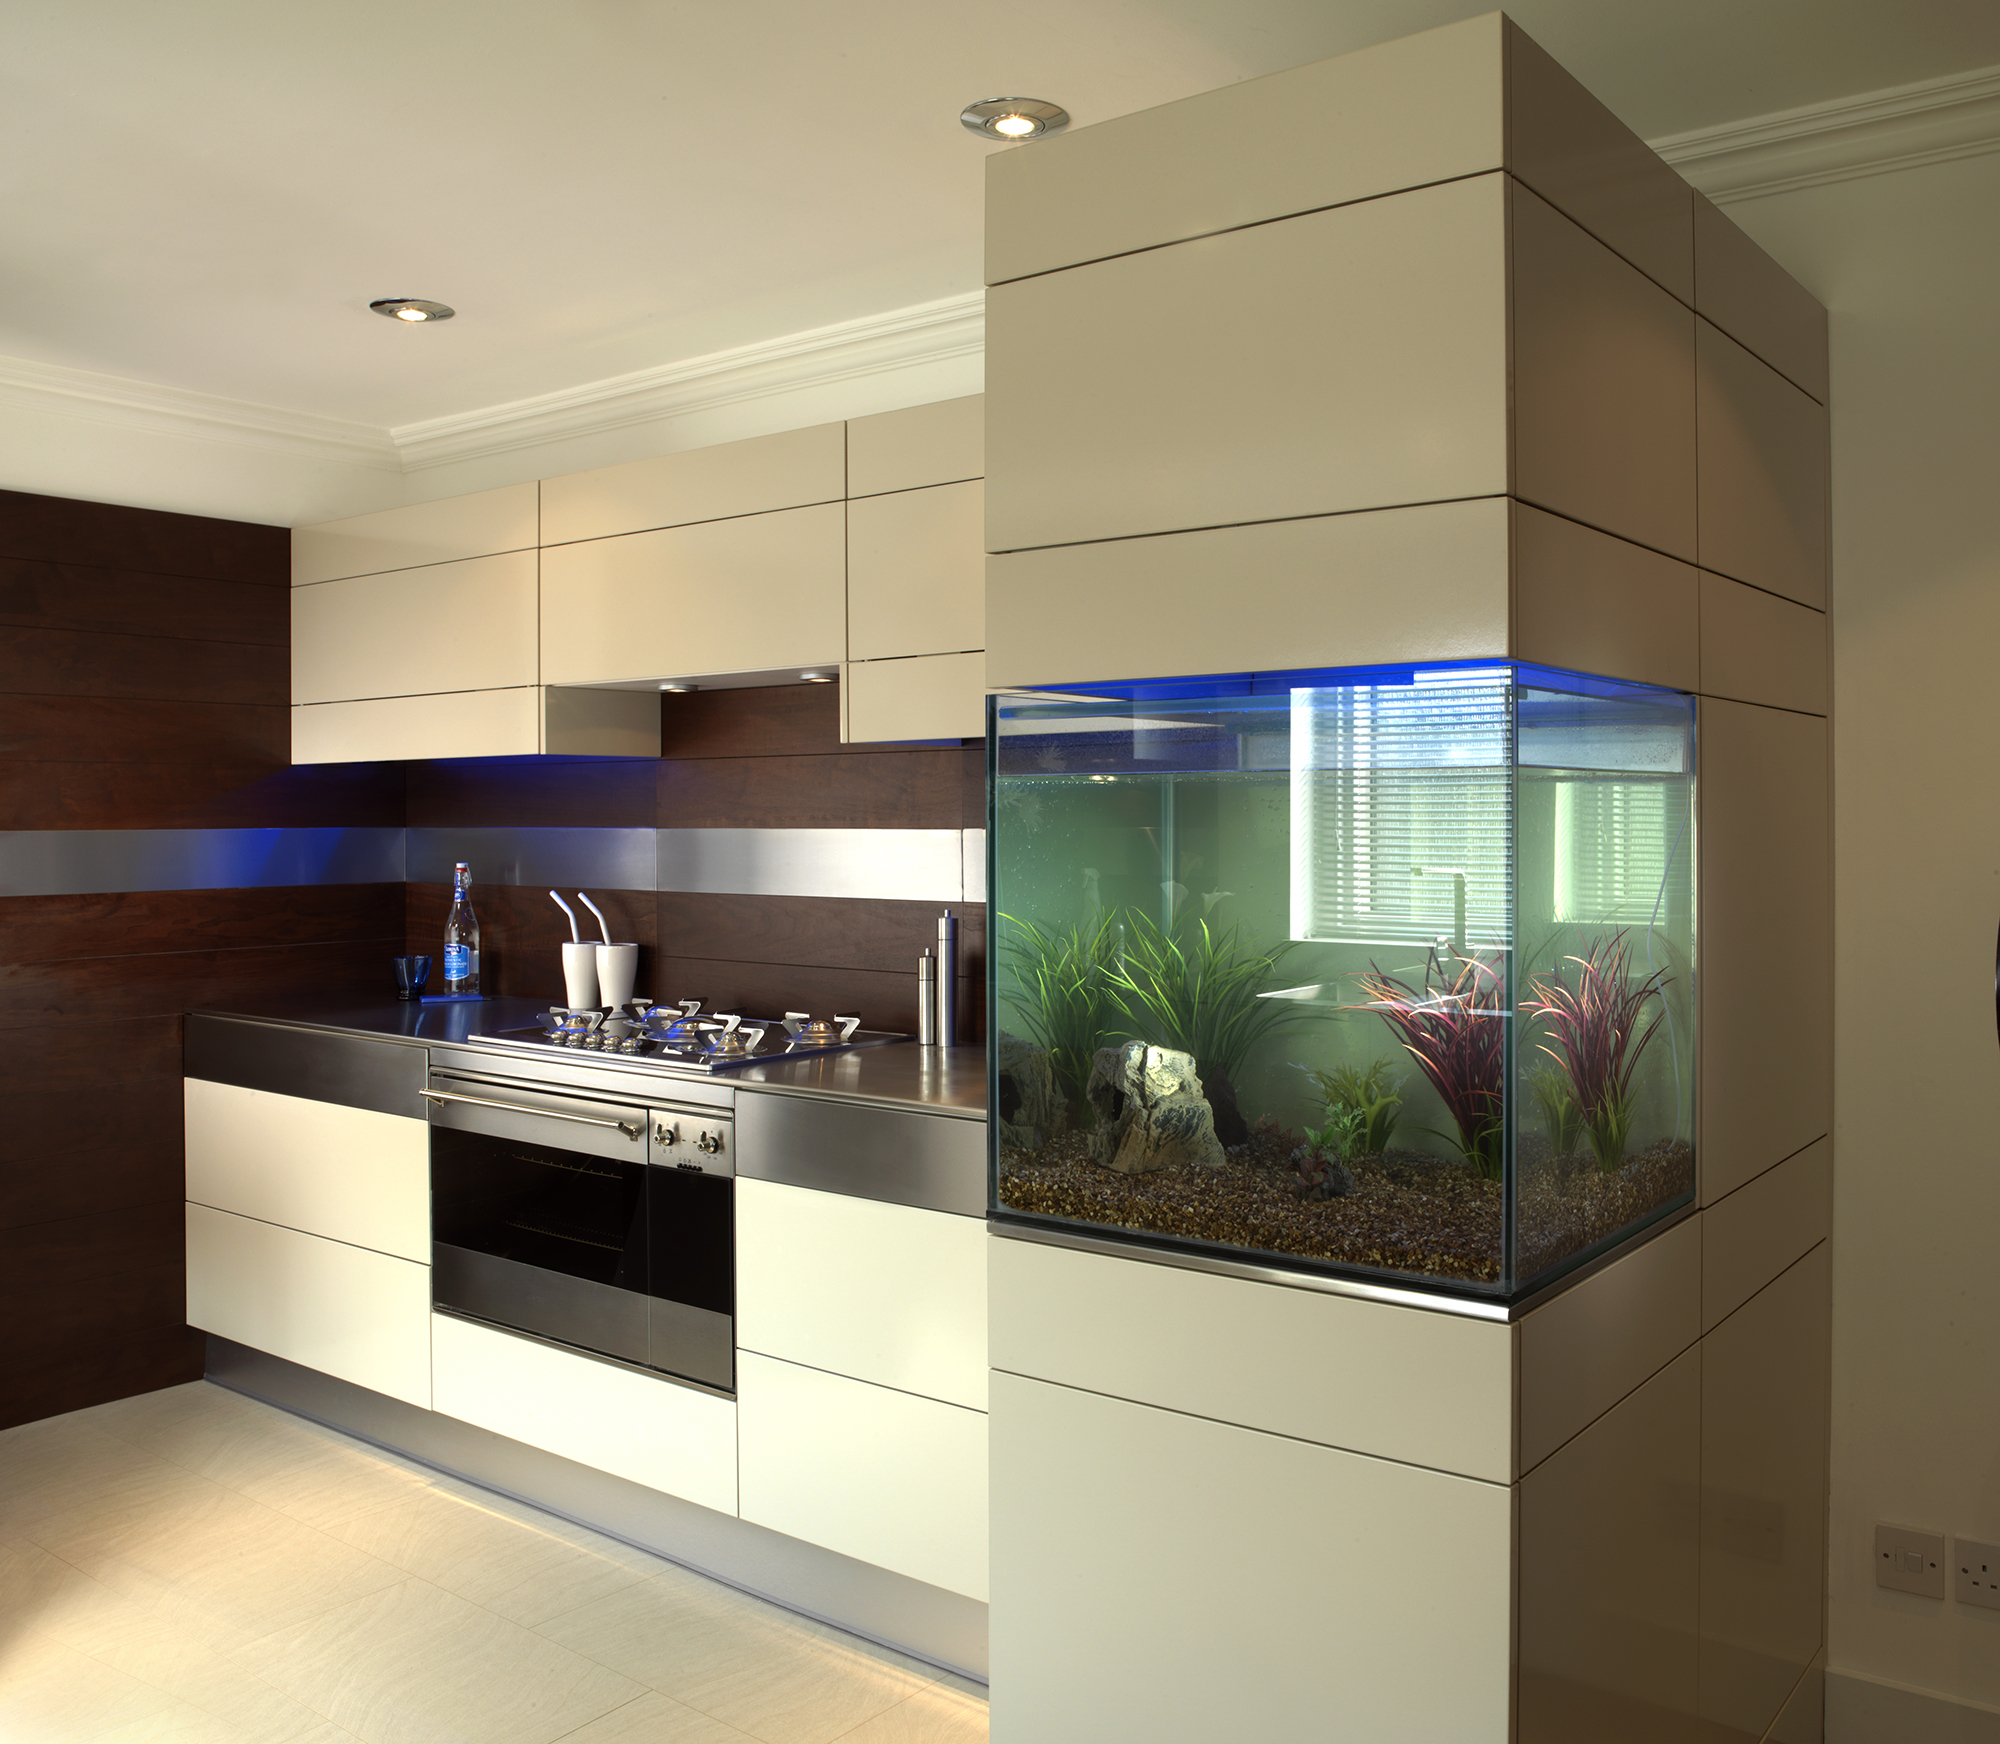 Kitchen Design Brown: Bespoke Luxury Kitchen Designs